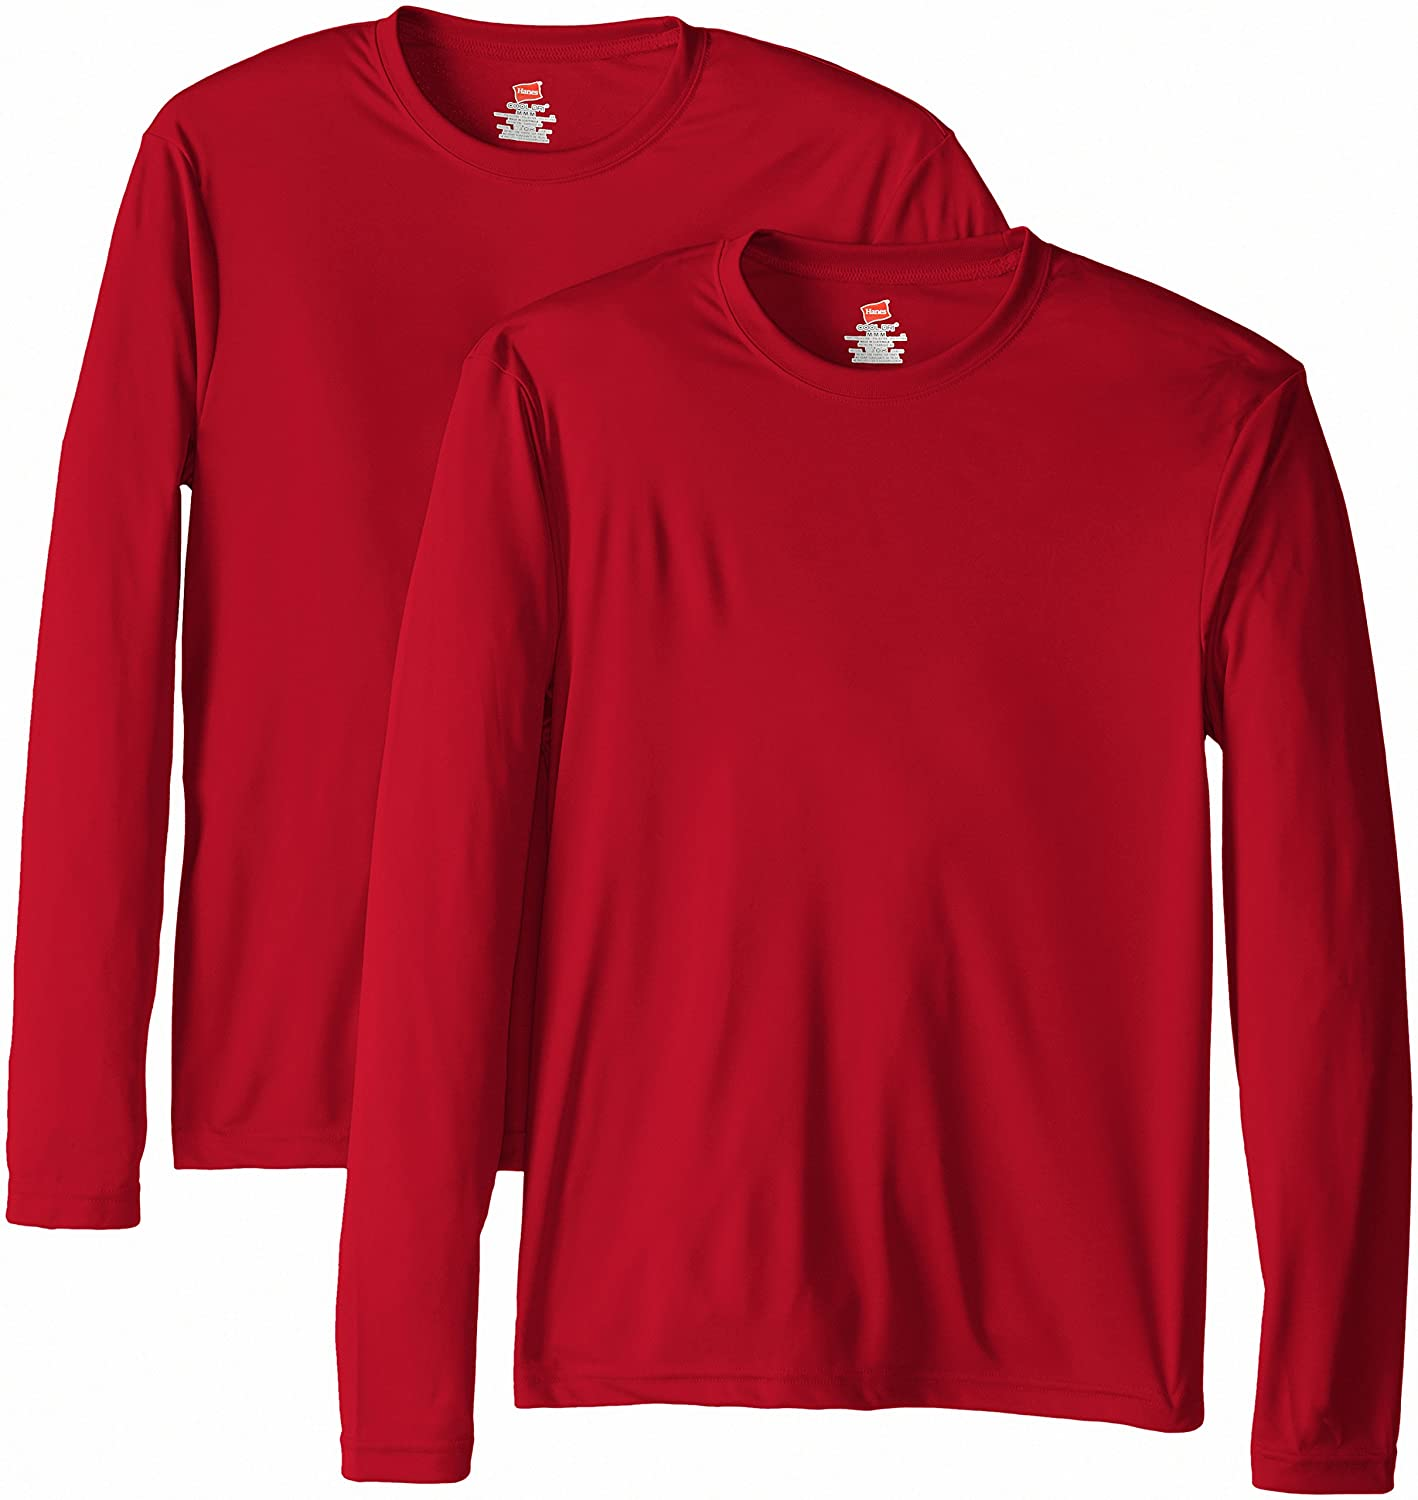 f7ab3b53f2c2df Hanes Men's Long Sleeve Cool Dri T-Shirt UPF 50+ (Pack of 2) at Amazon  Men's Clothing store: